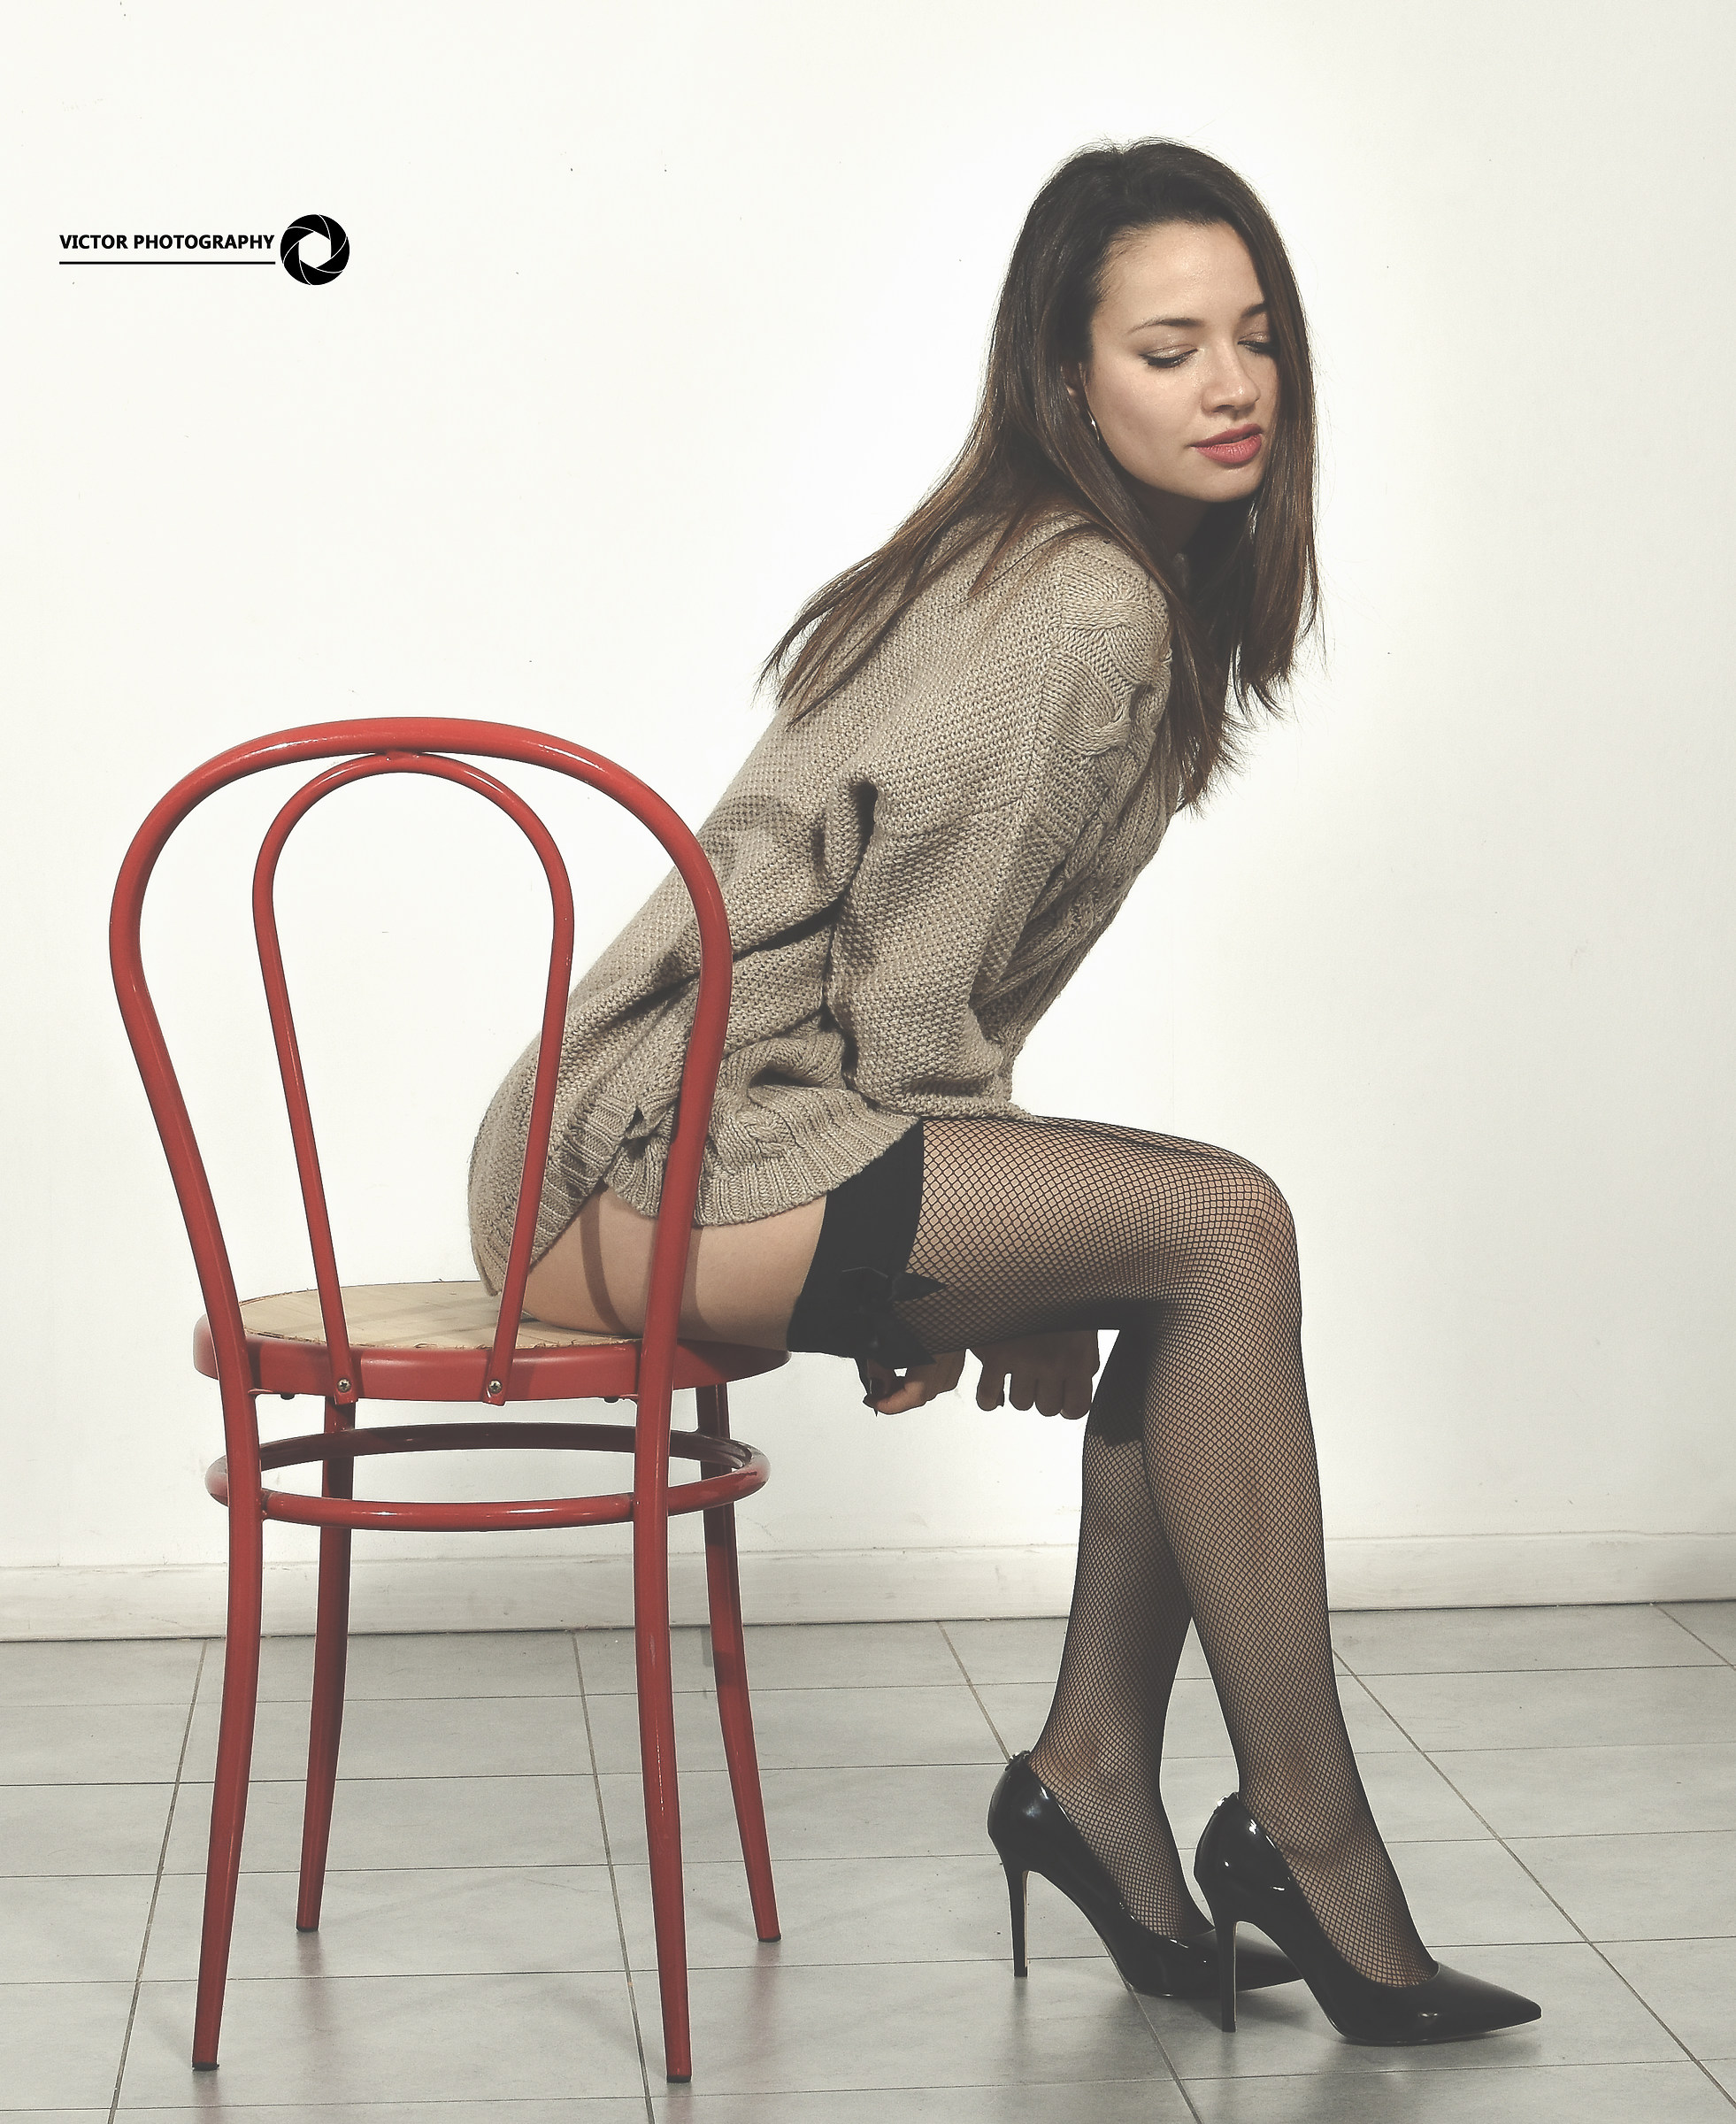 On the red Chair...